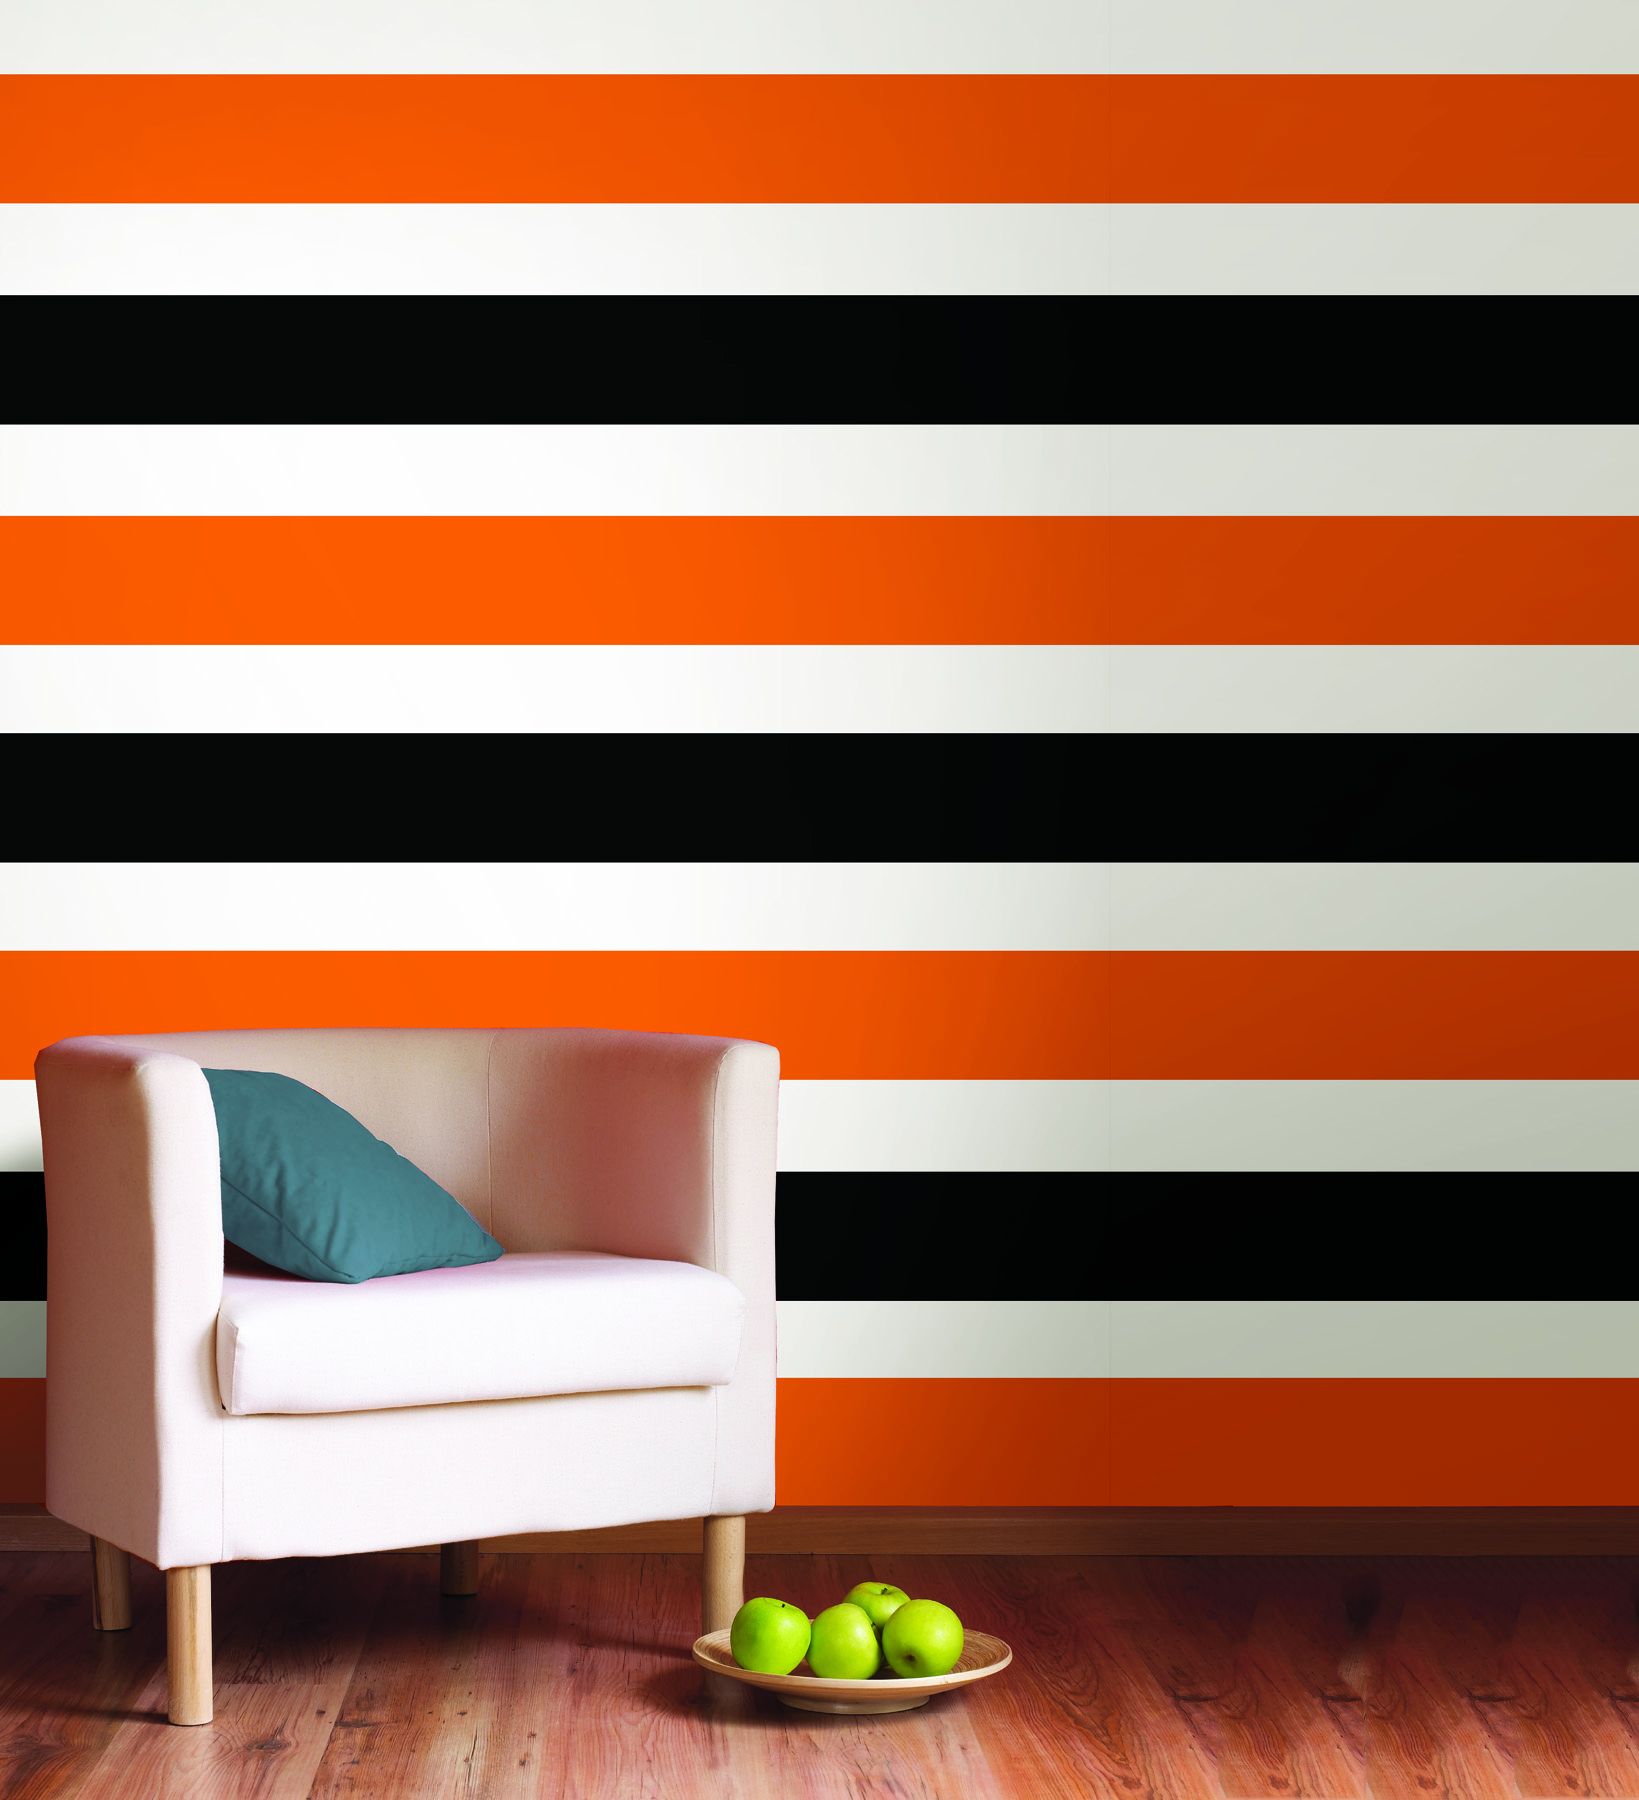 Creating a striped wall poptalk